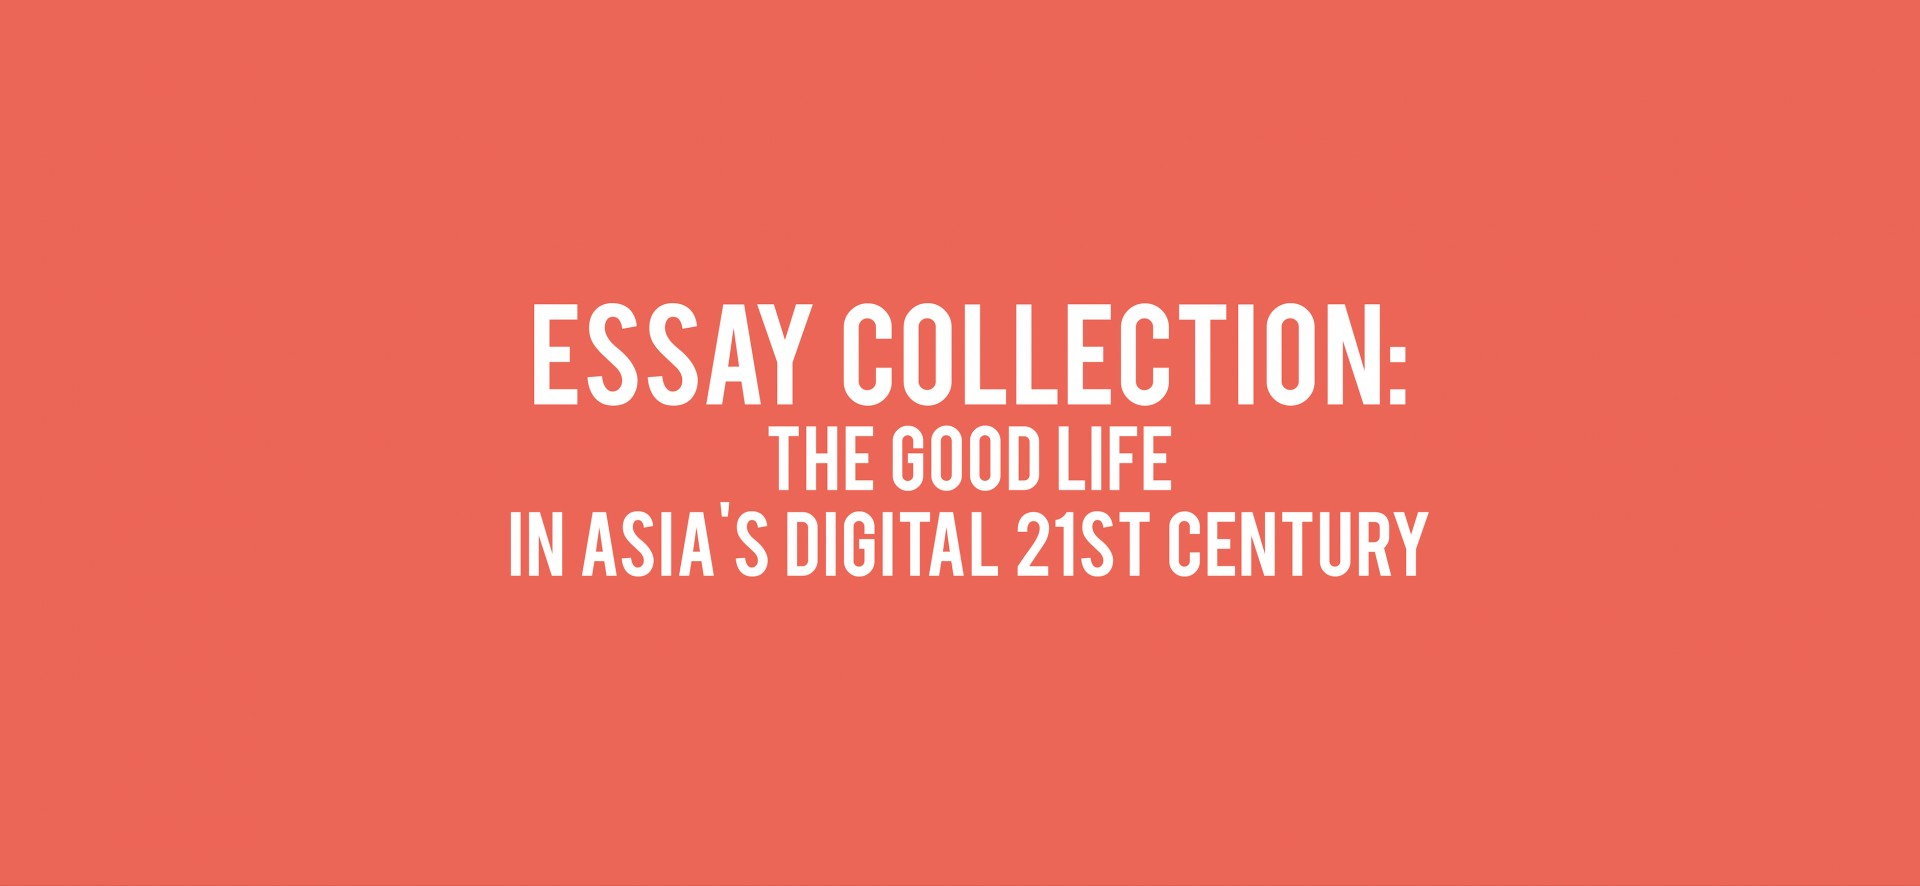 027 Essay Collection Untitled Shocking Best Pdf Collections 2019 1920